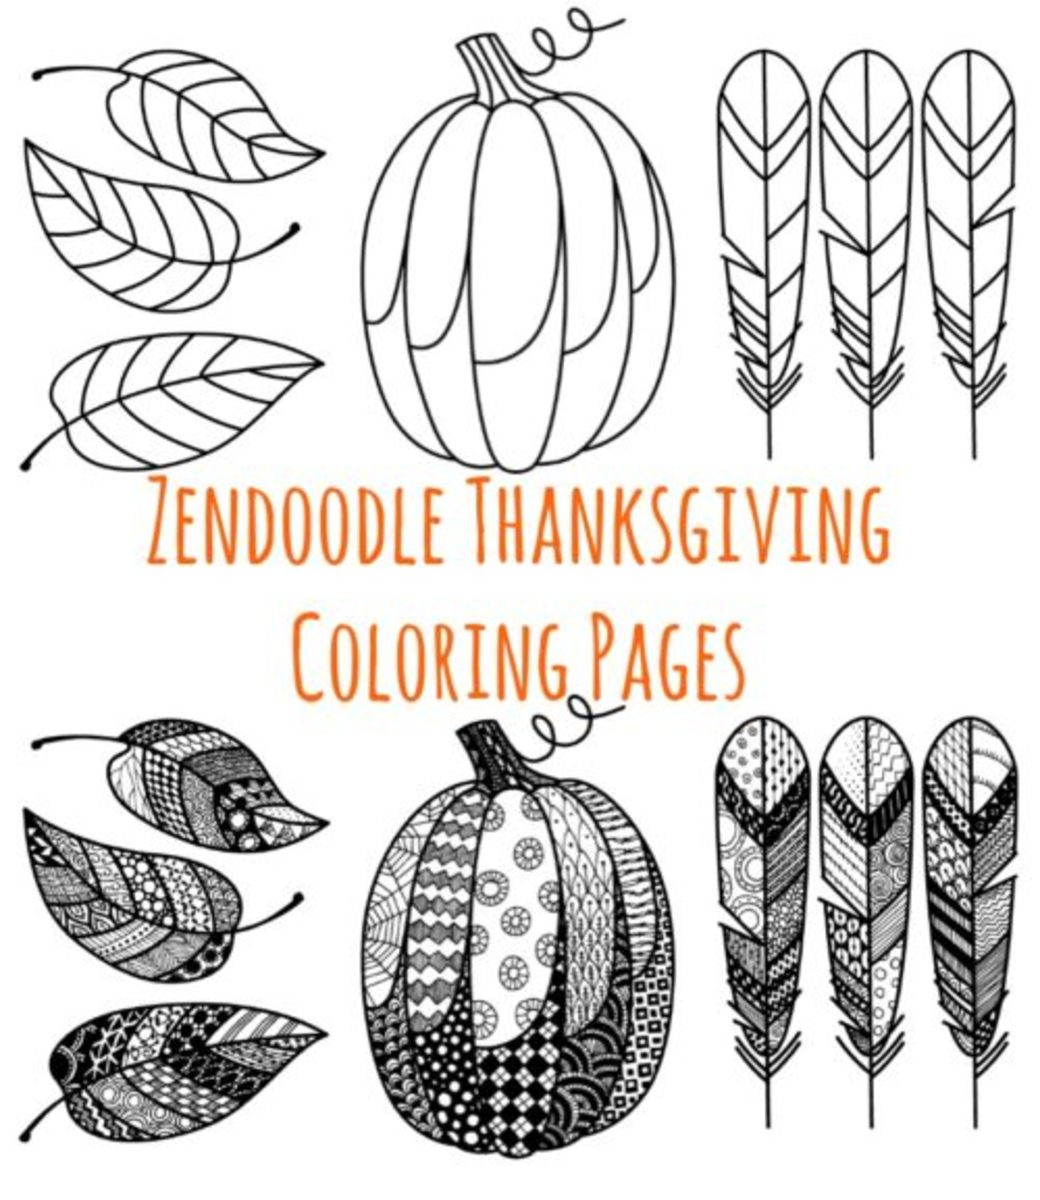 Zendoodle Thanksgiving Coloring Pages